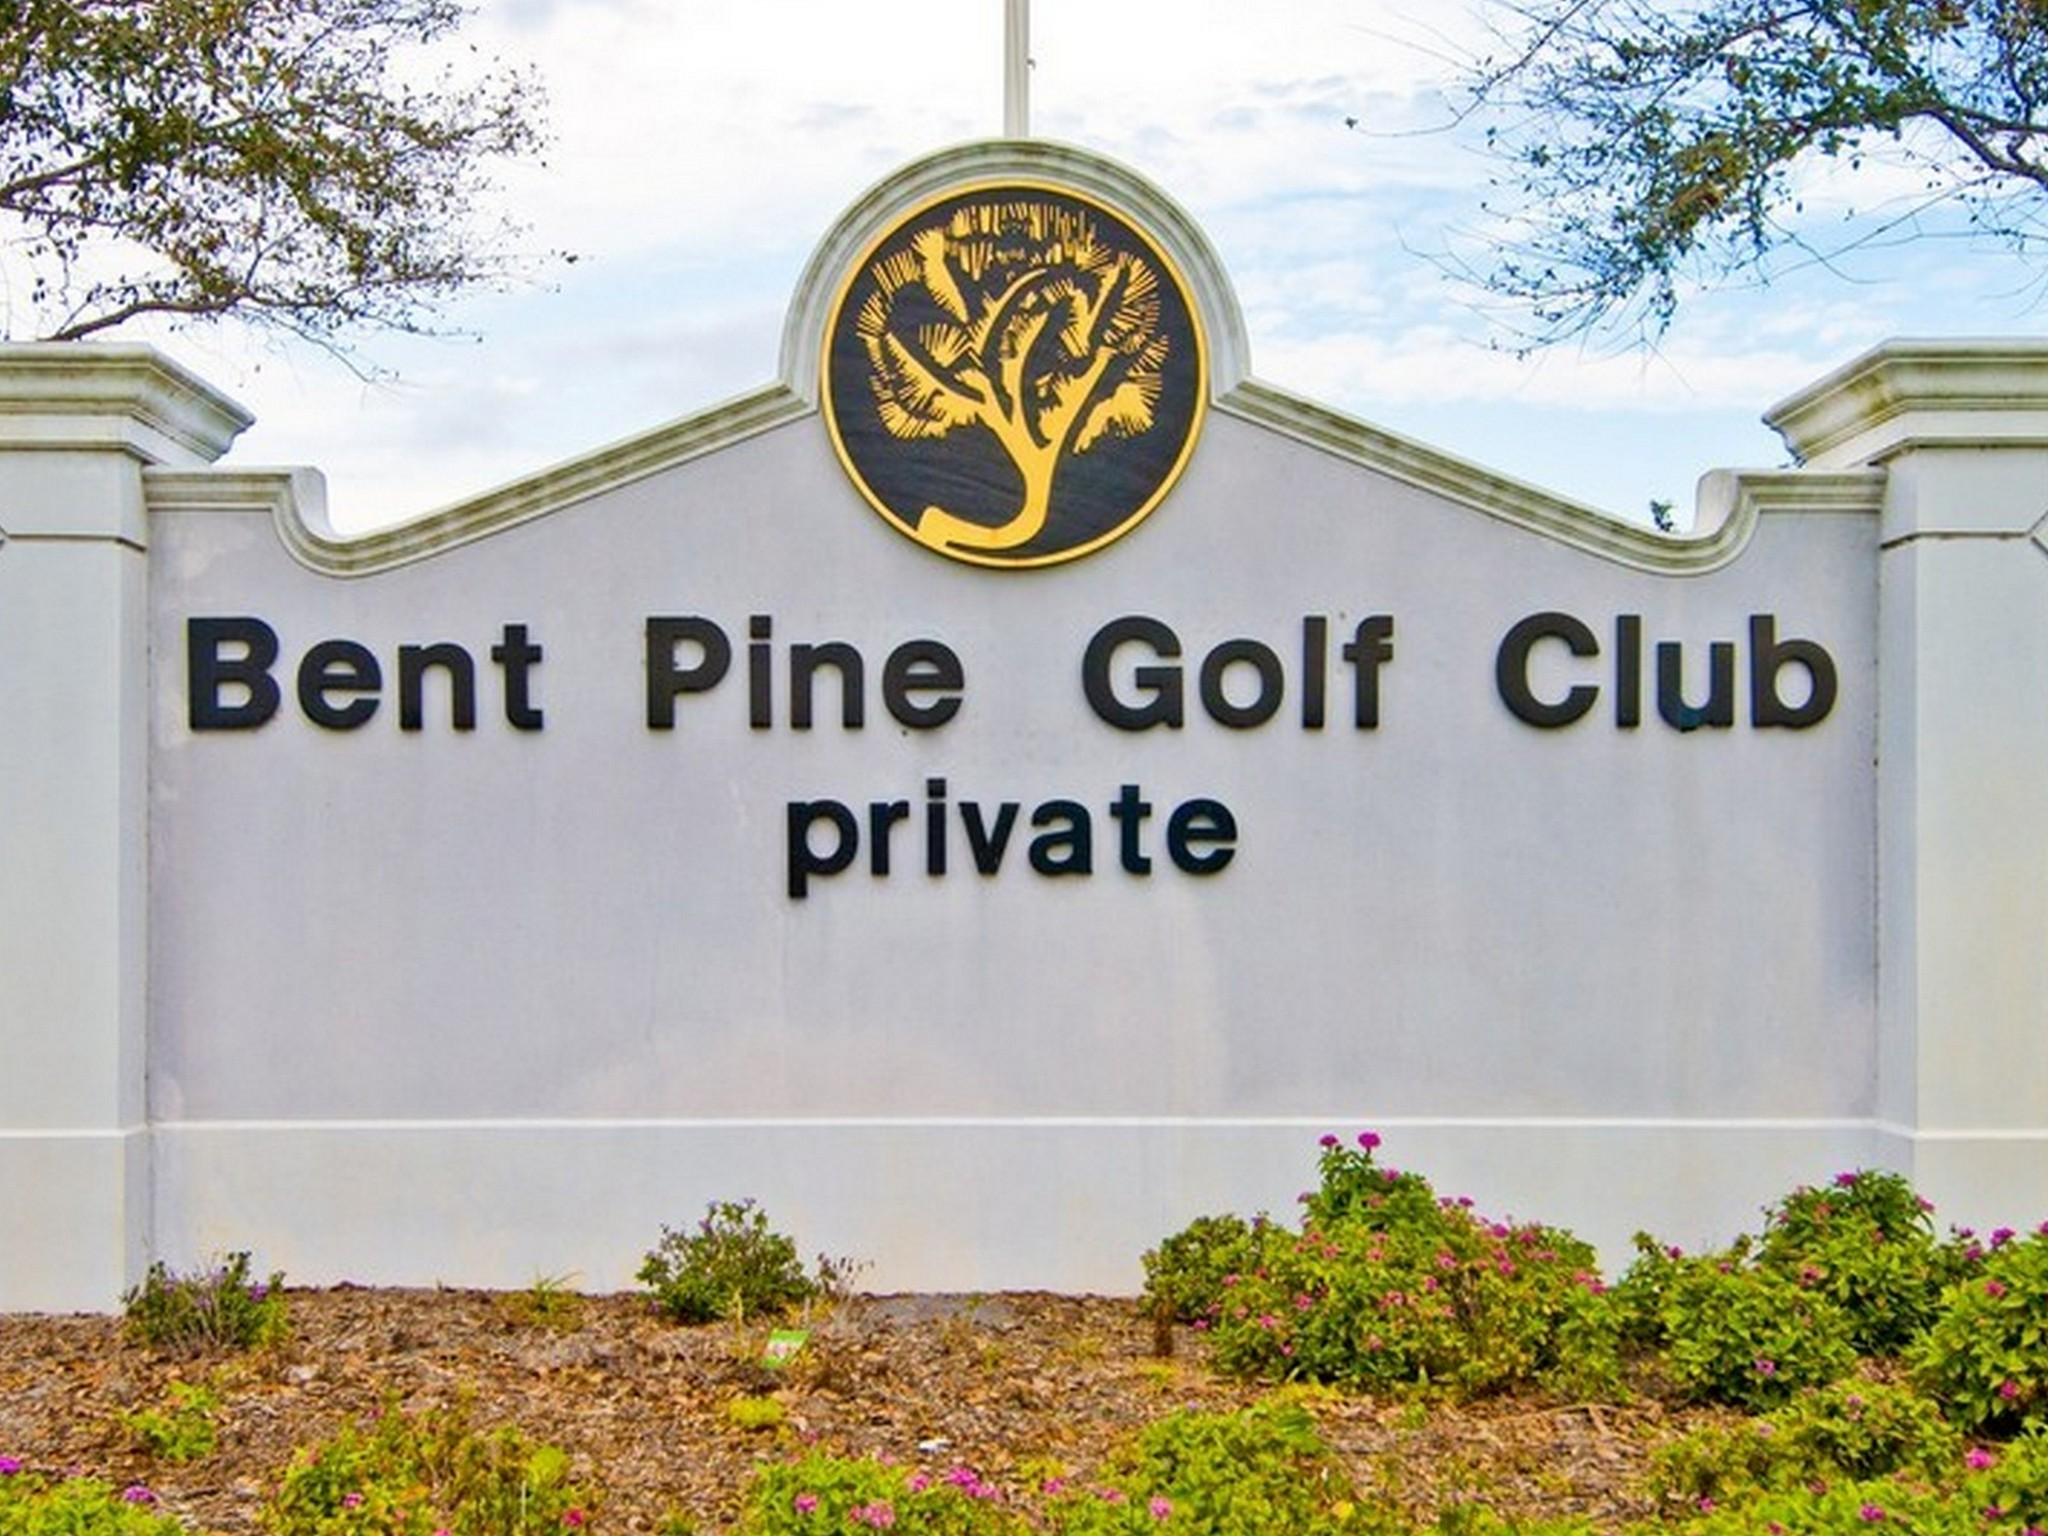 Land for Sale at To Be Constructed Golf Club Home in Bent Pine 5730 Glen Eagle Lane Vero Beach, Florida, 32967 United States